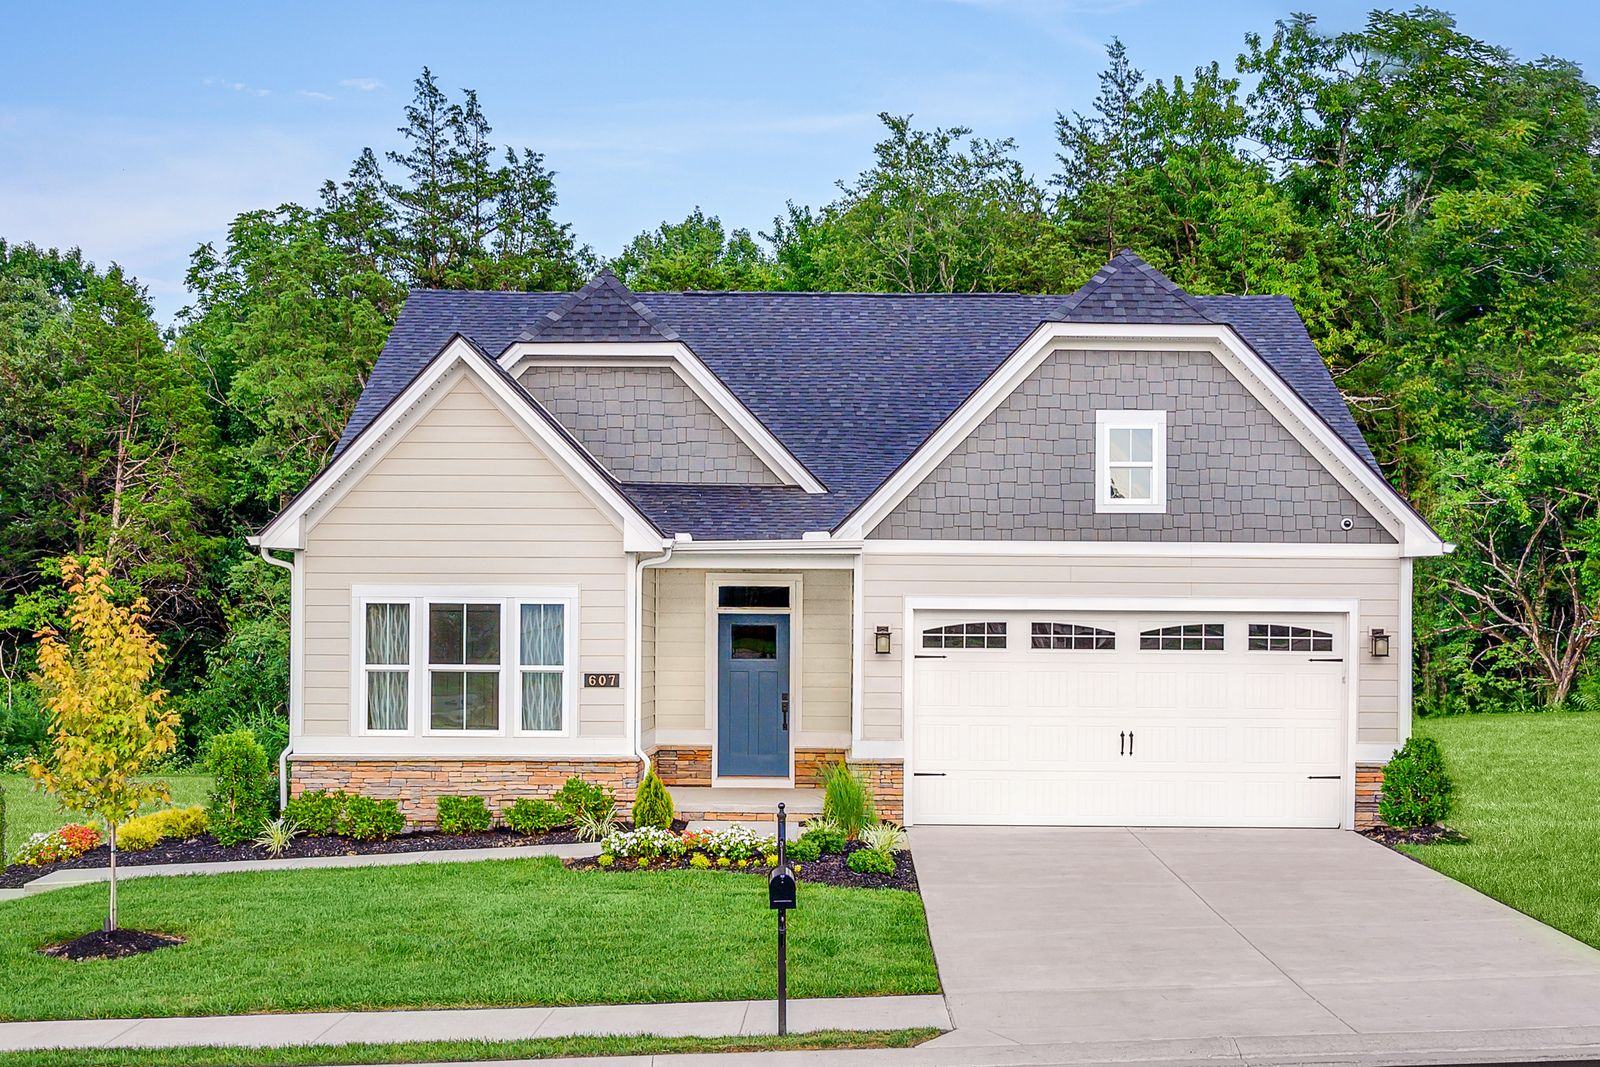 Welcome home to The Preserve at Deep Creek 55+:The lowest priced new 55+ ranch homes with a community pool and clubhouse, just minutes from the area's best shopping and dining in Middletown, DE.Click hereto schedule your appointment today!